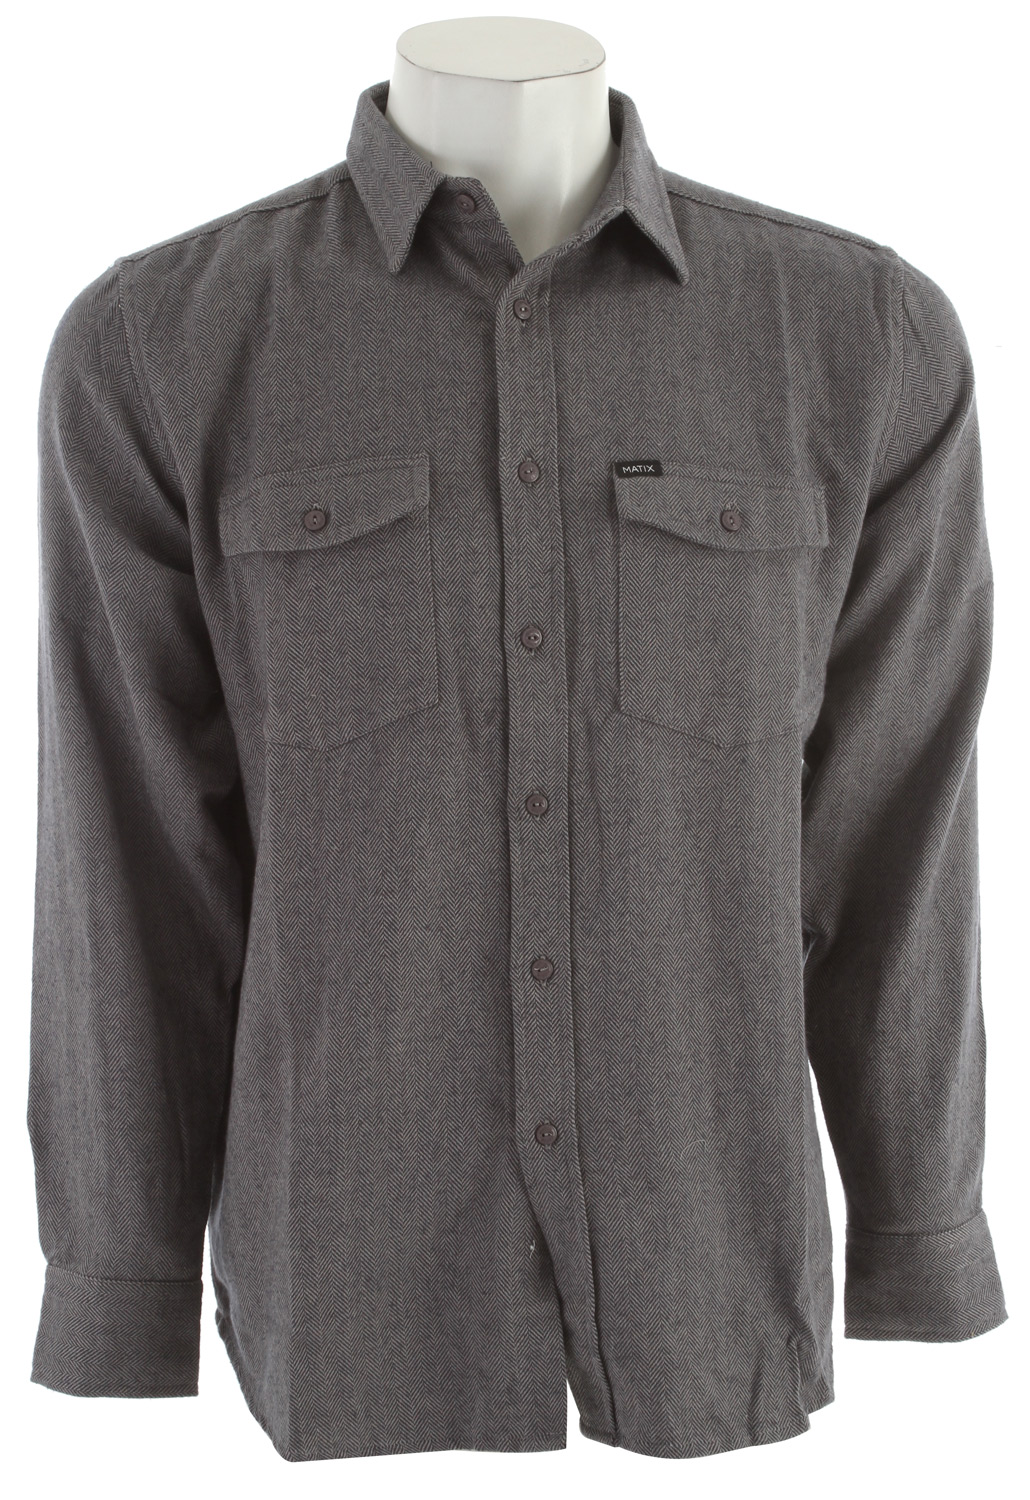 Key Features of the Matix Money Barrel Shirt: 100% cotton Solid style with a herringbone weave construction Chest pockets Slim fit Matix/Torey Pudwill signature labeling - $37.95